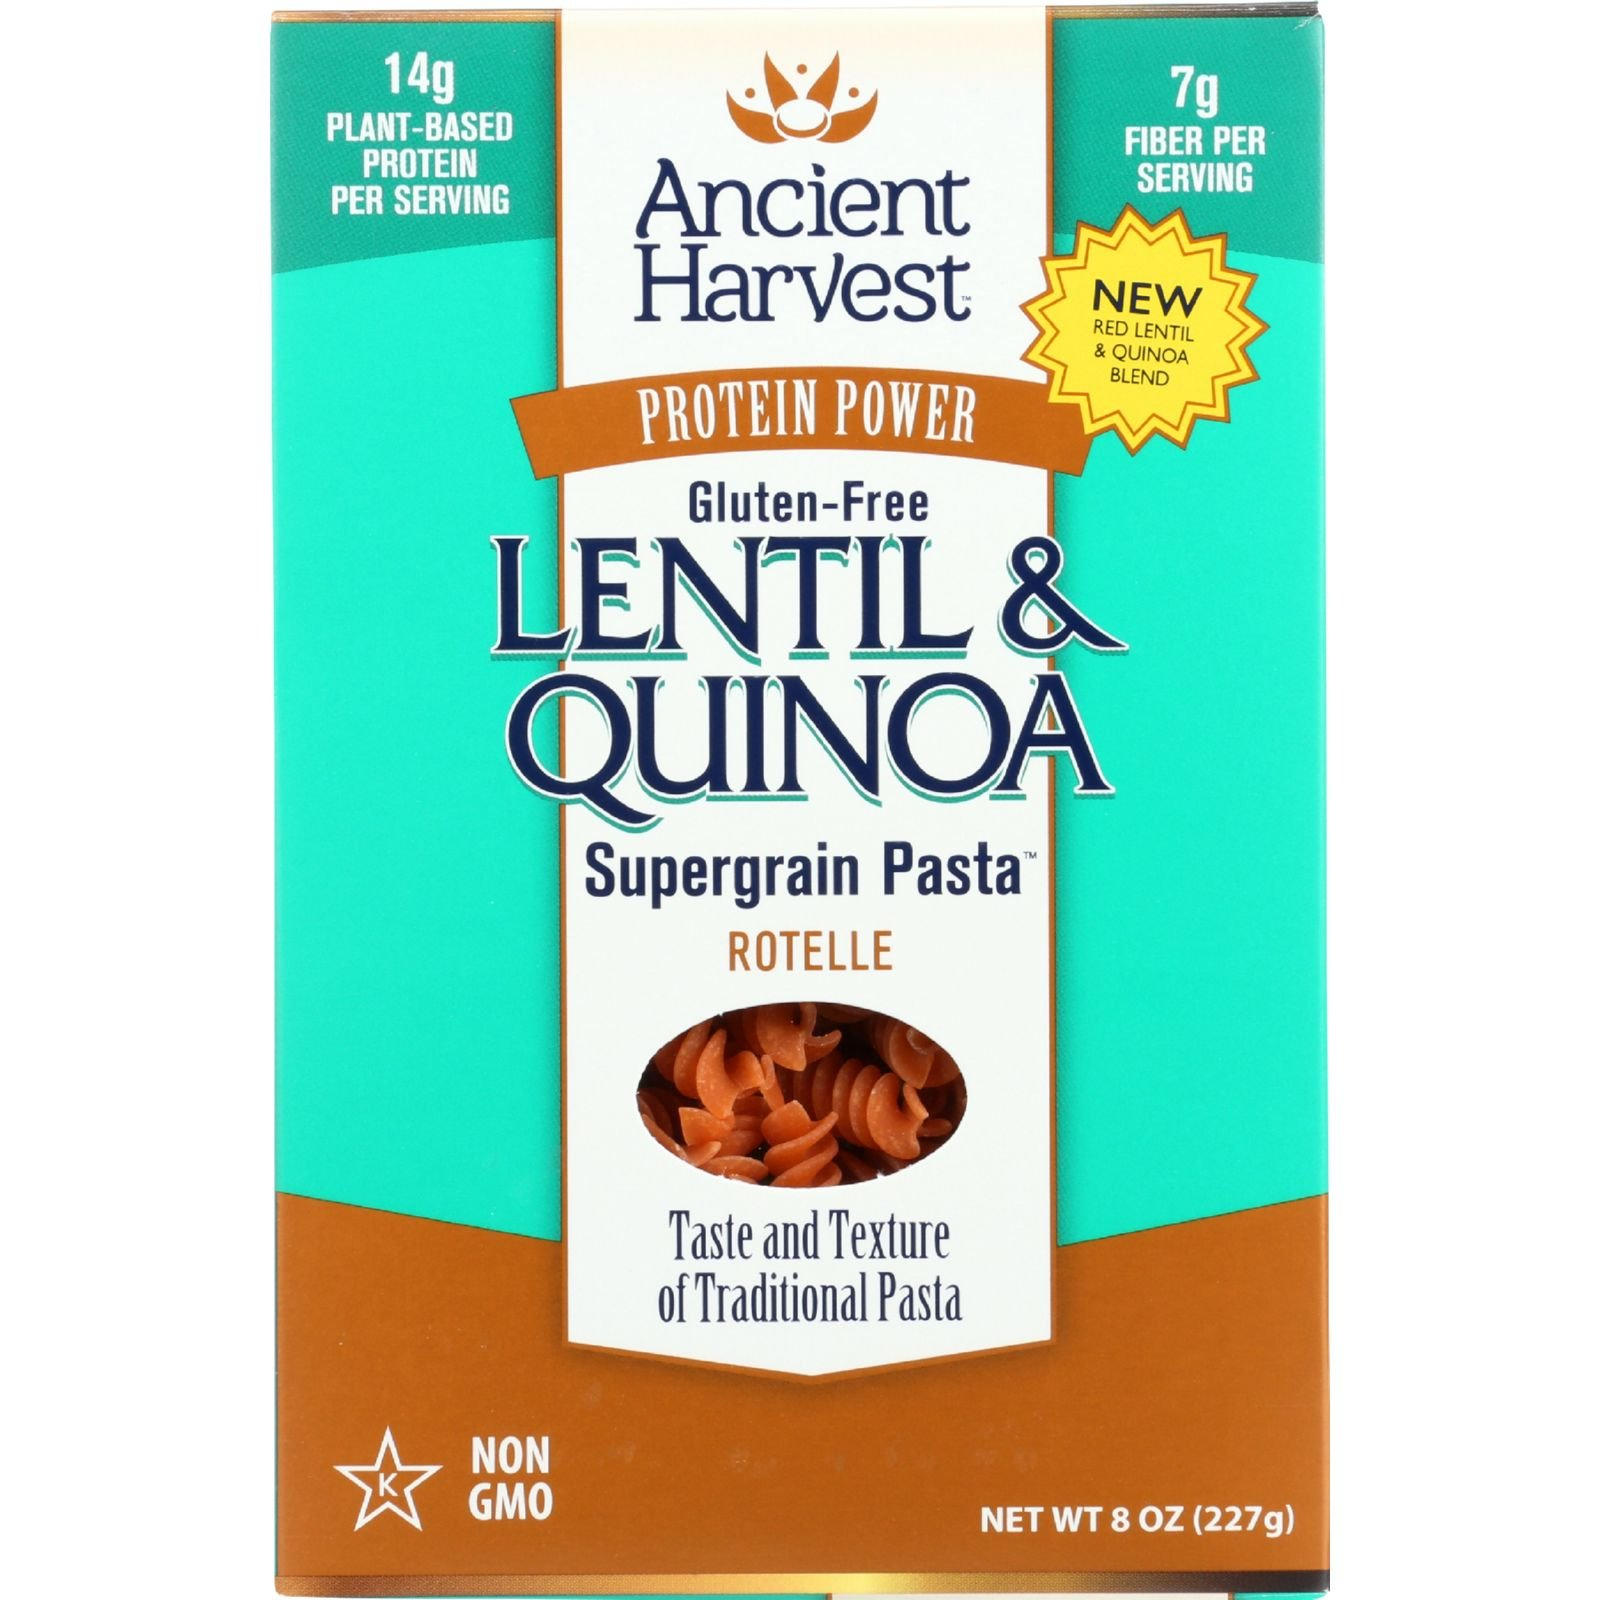 Ancient Harvest Pasta - Supergrain - Red Lentil and Quinoa Rotelle - Gluten Free - 8 oz - case of 6 - - Gluten Free - - - - by Ancient Harvest